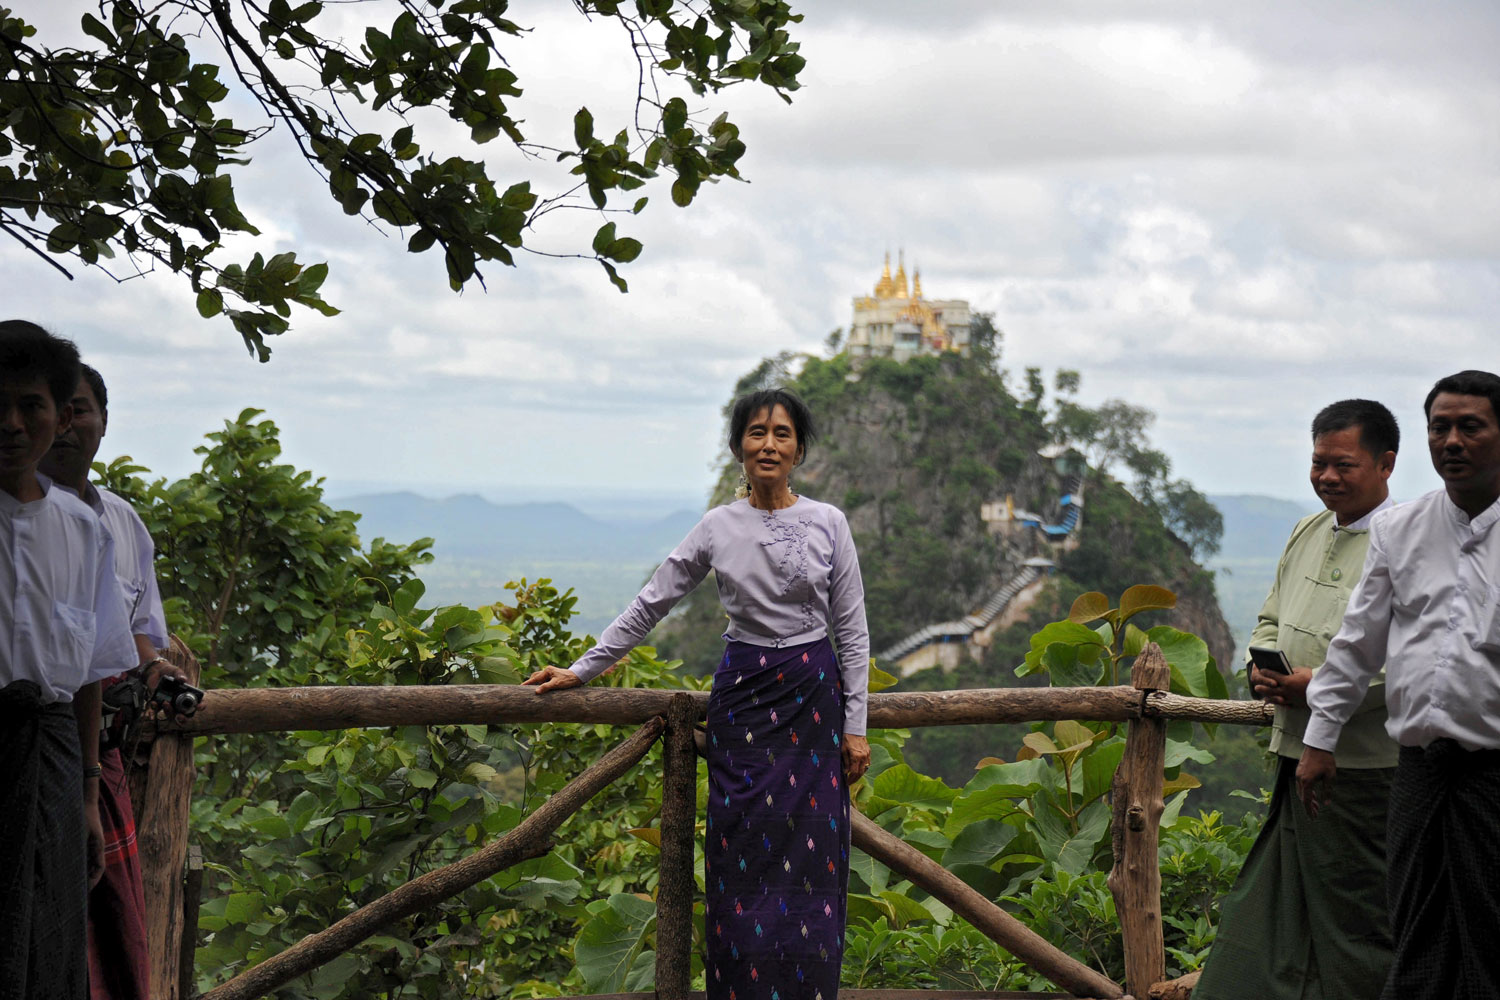 July 6, 2011. Democracy icon Aung San Suu Kyi poses for a photograph during her visit to Mt. Popa in Kyauk Padaung Township, near Mandalay. Suu Kyi attracted a large crowd as she continued her visit to an ancient temple city in central Myanmar, proving her enduring popularity after years of house arrest.